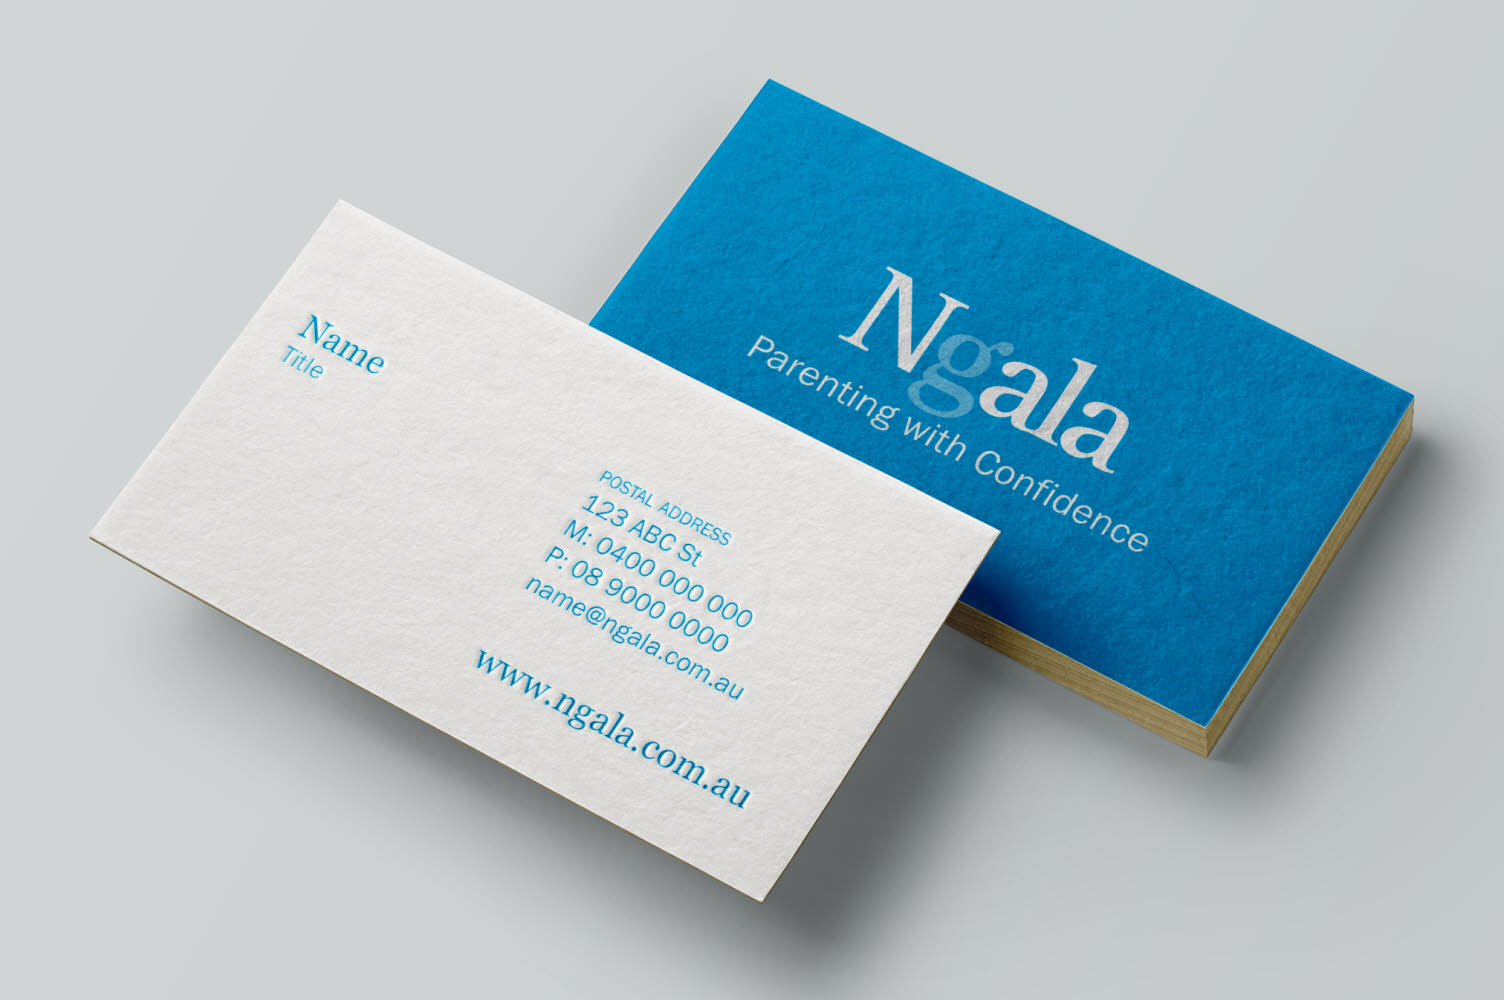 Business card printing perth wa scott print whether you hand over a plain card or well designed embellished business card it is a reflection on your business and sets the standard of expectation reheart Image collections